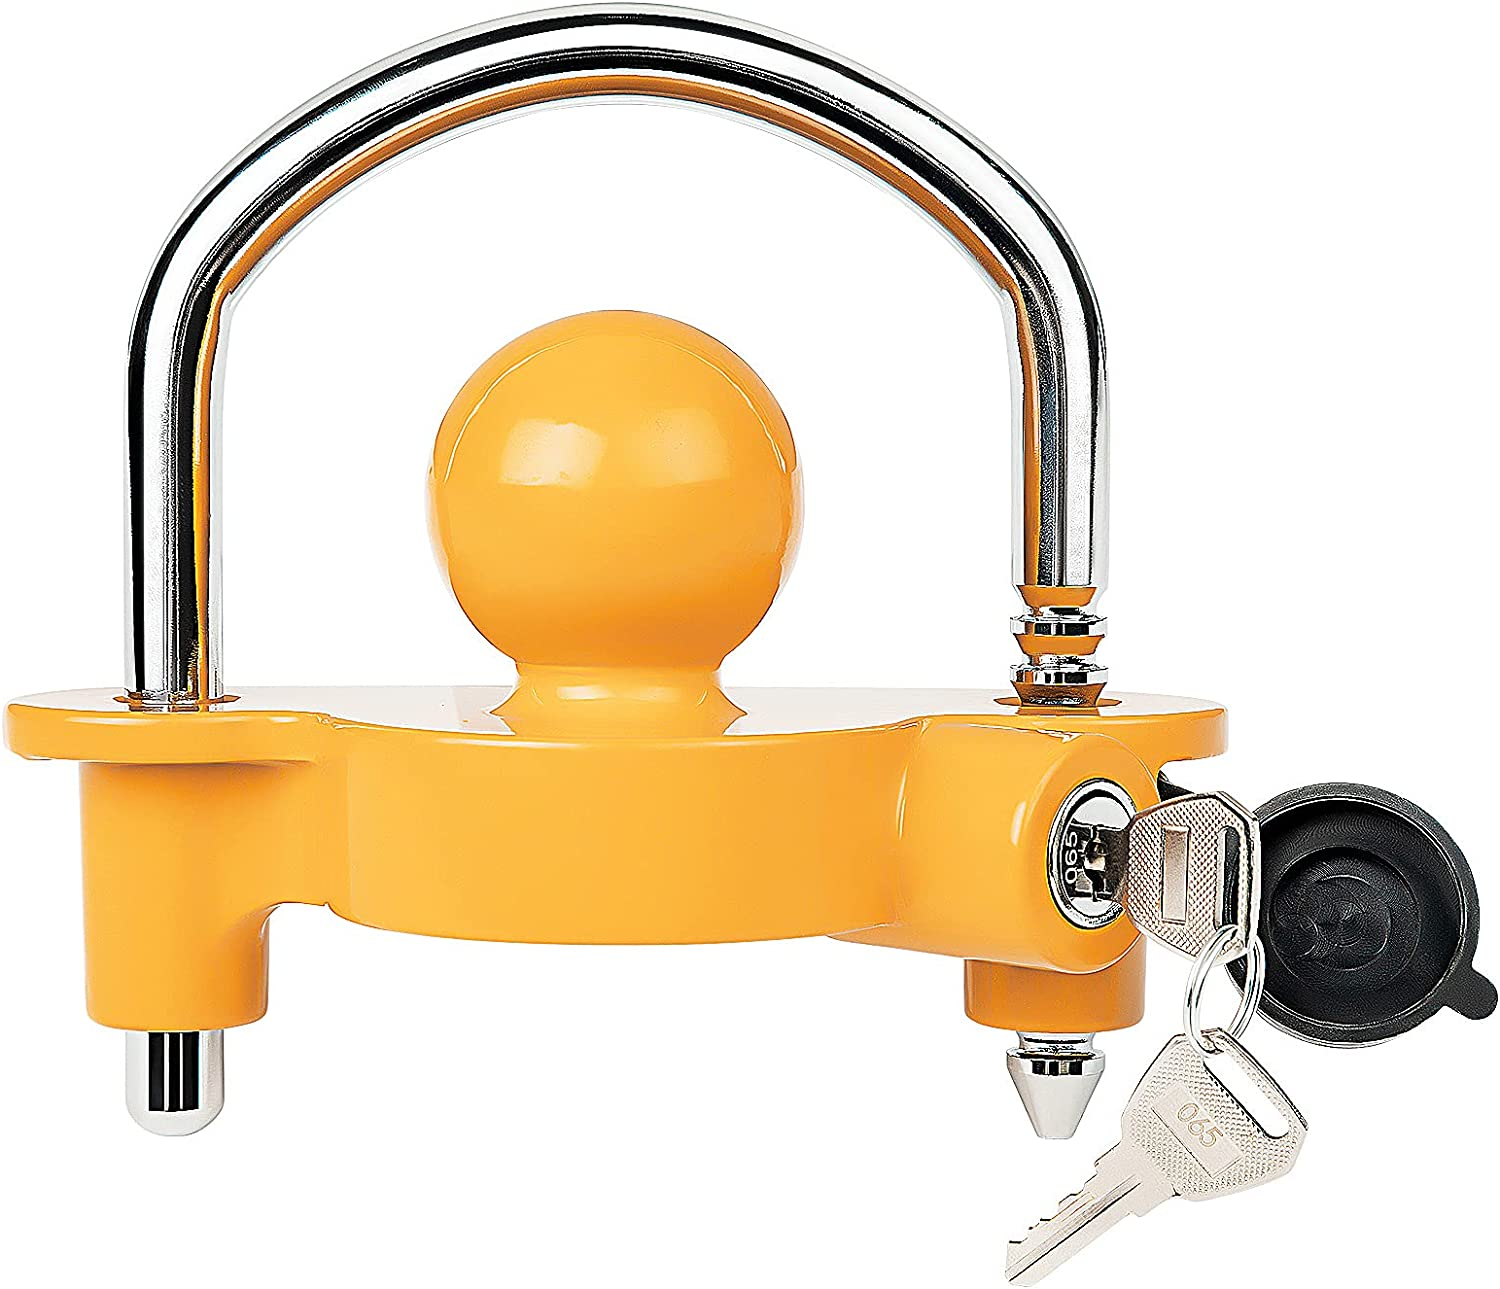 Online limited product Eleven Guns Outstanding Trailer Hitch Lock Keys Tongue 3 with